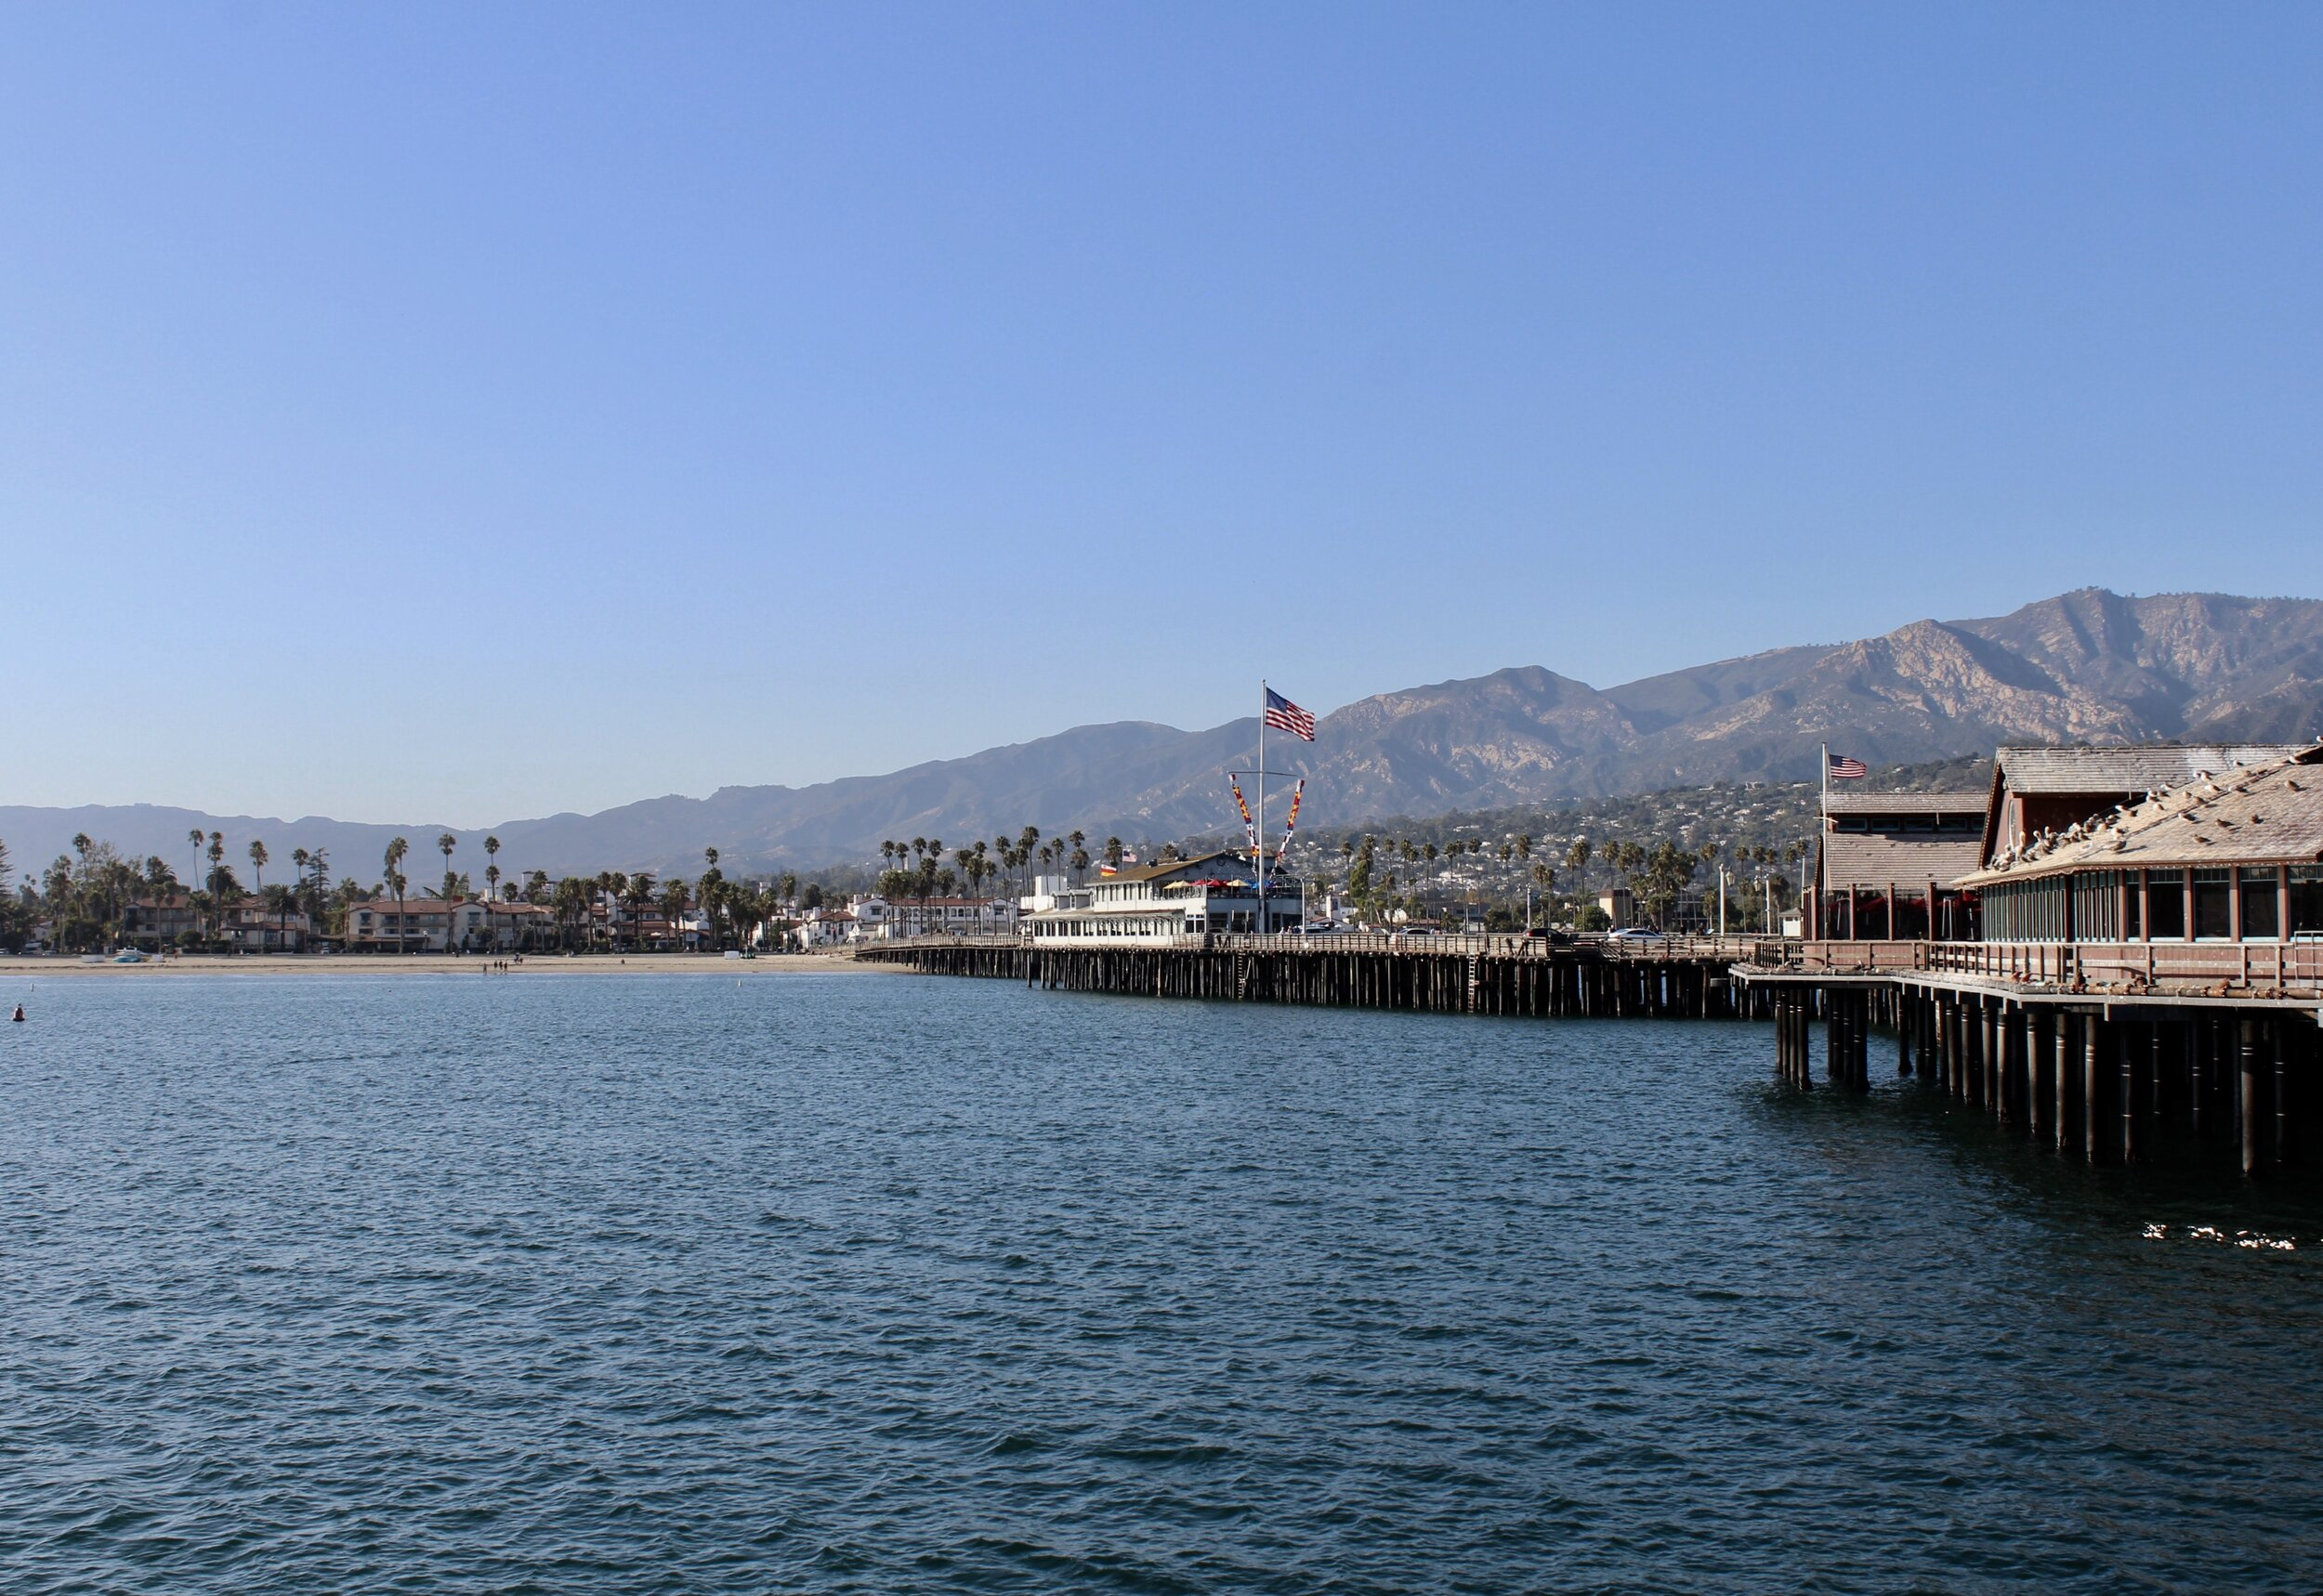 The view from Stearns Wharf